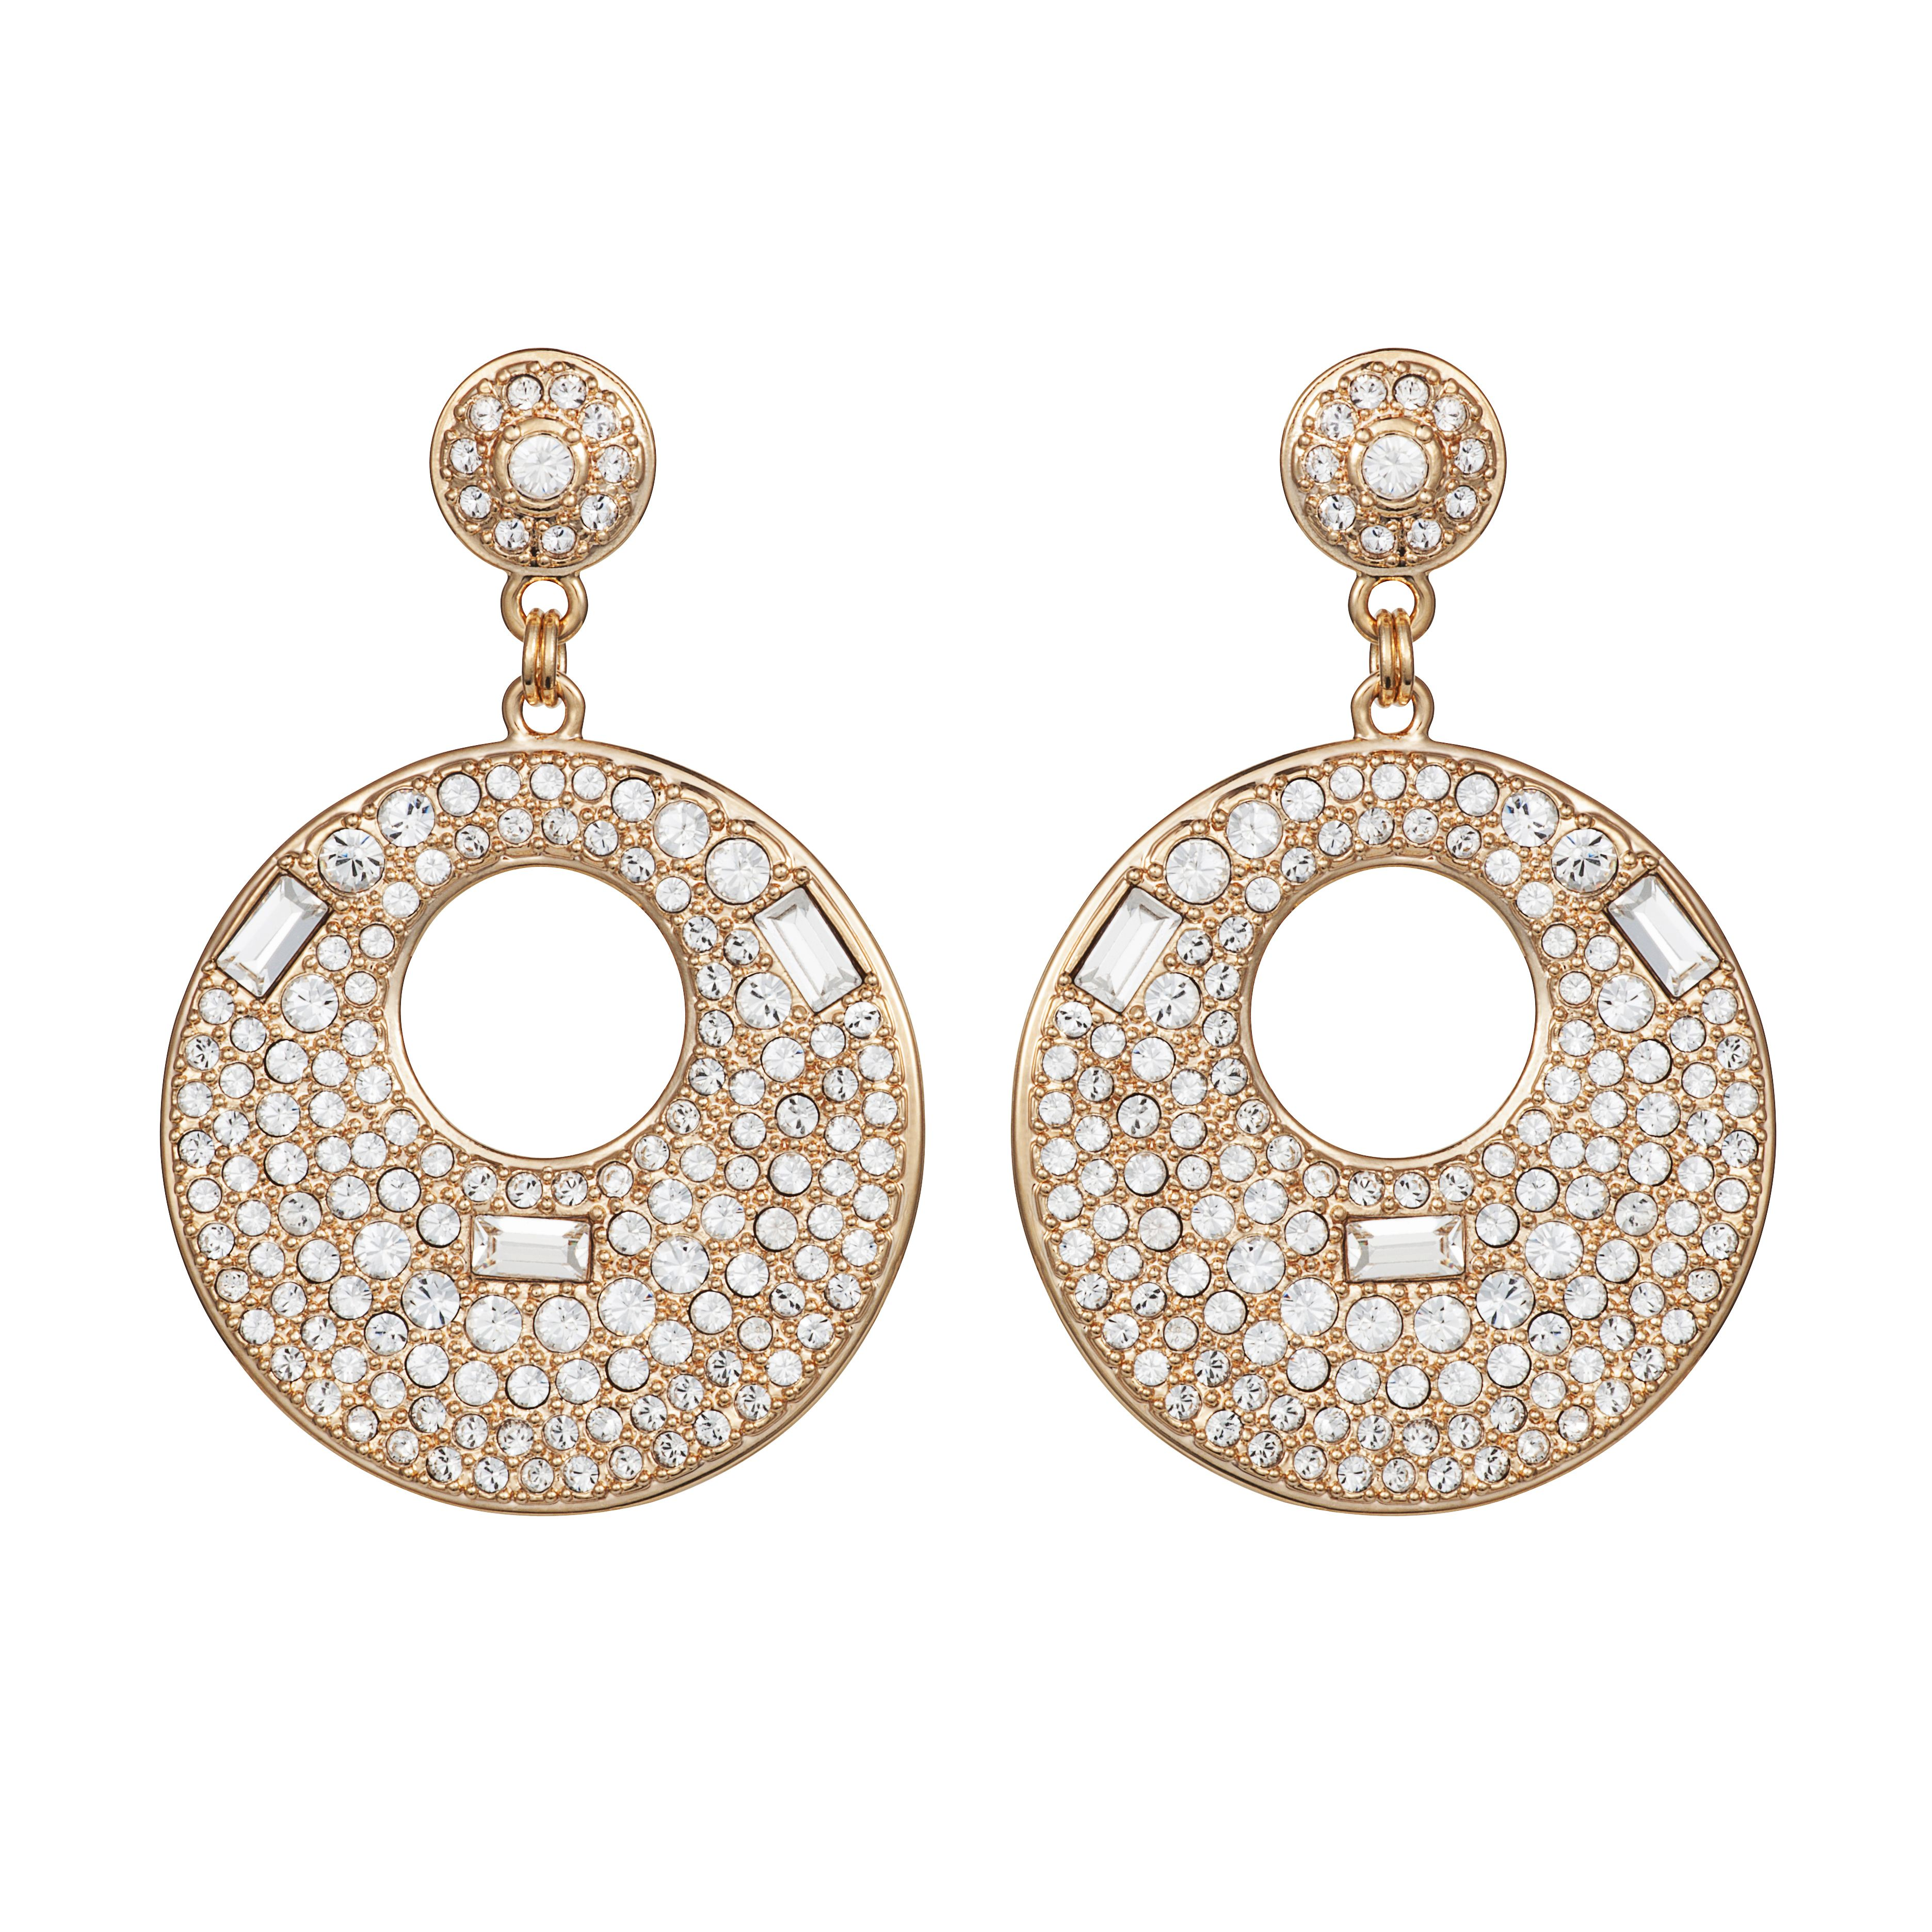 Handmade 18ct gold pave crystal earrings